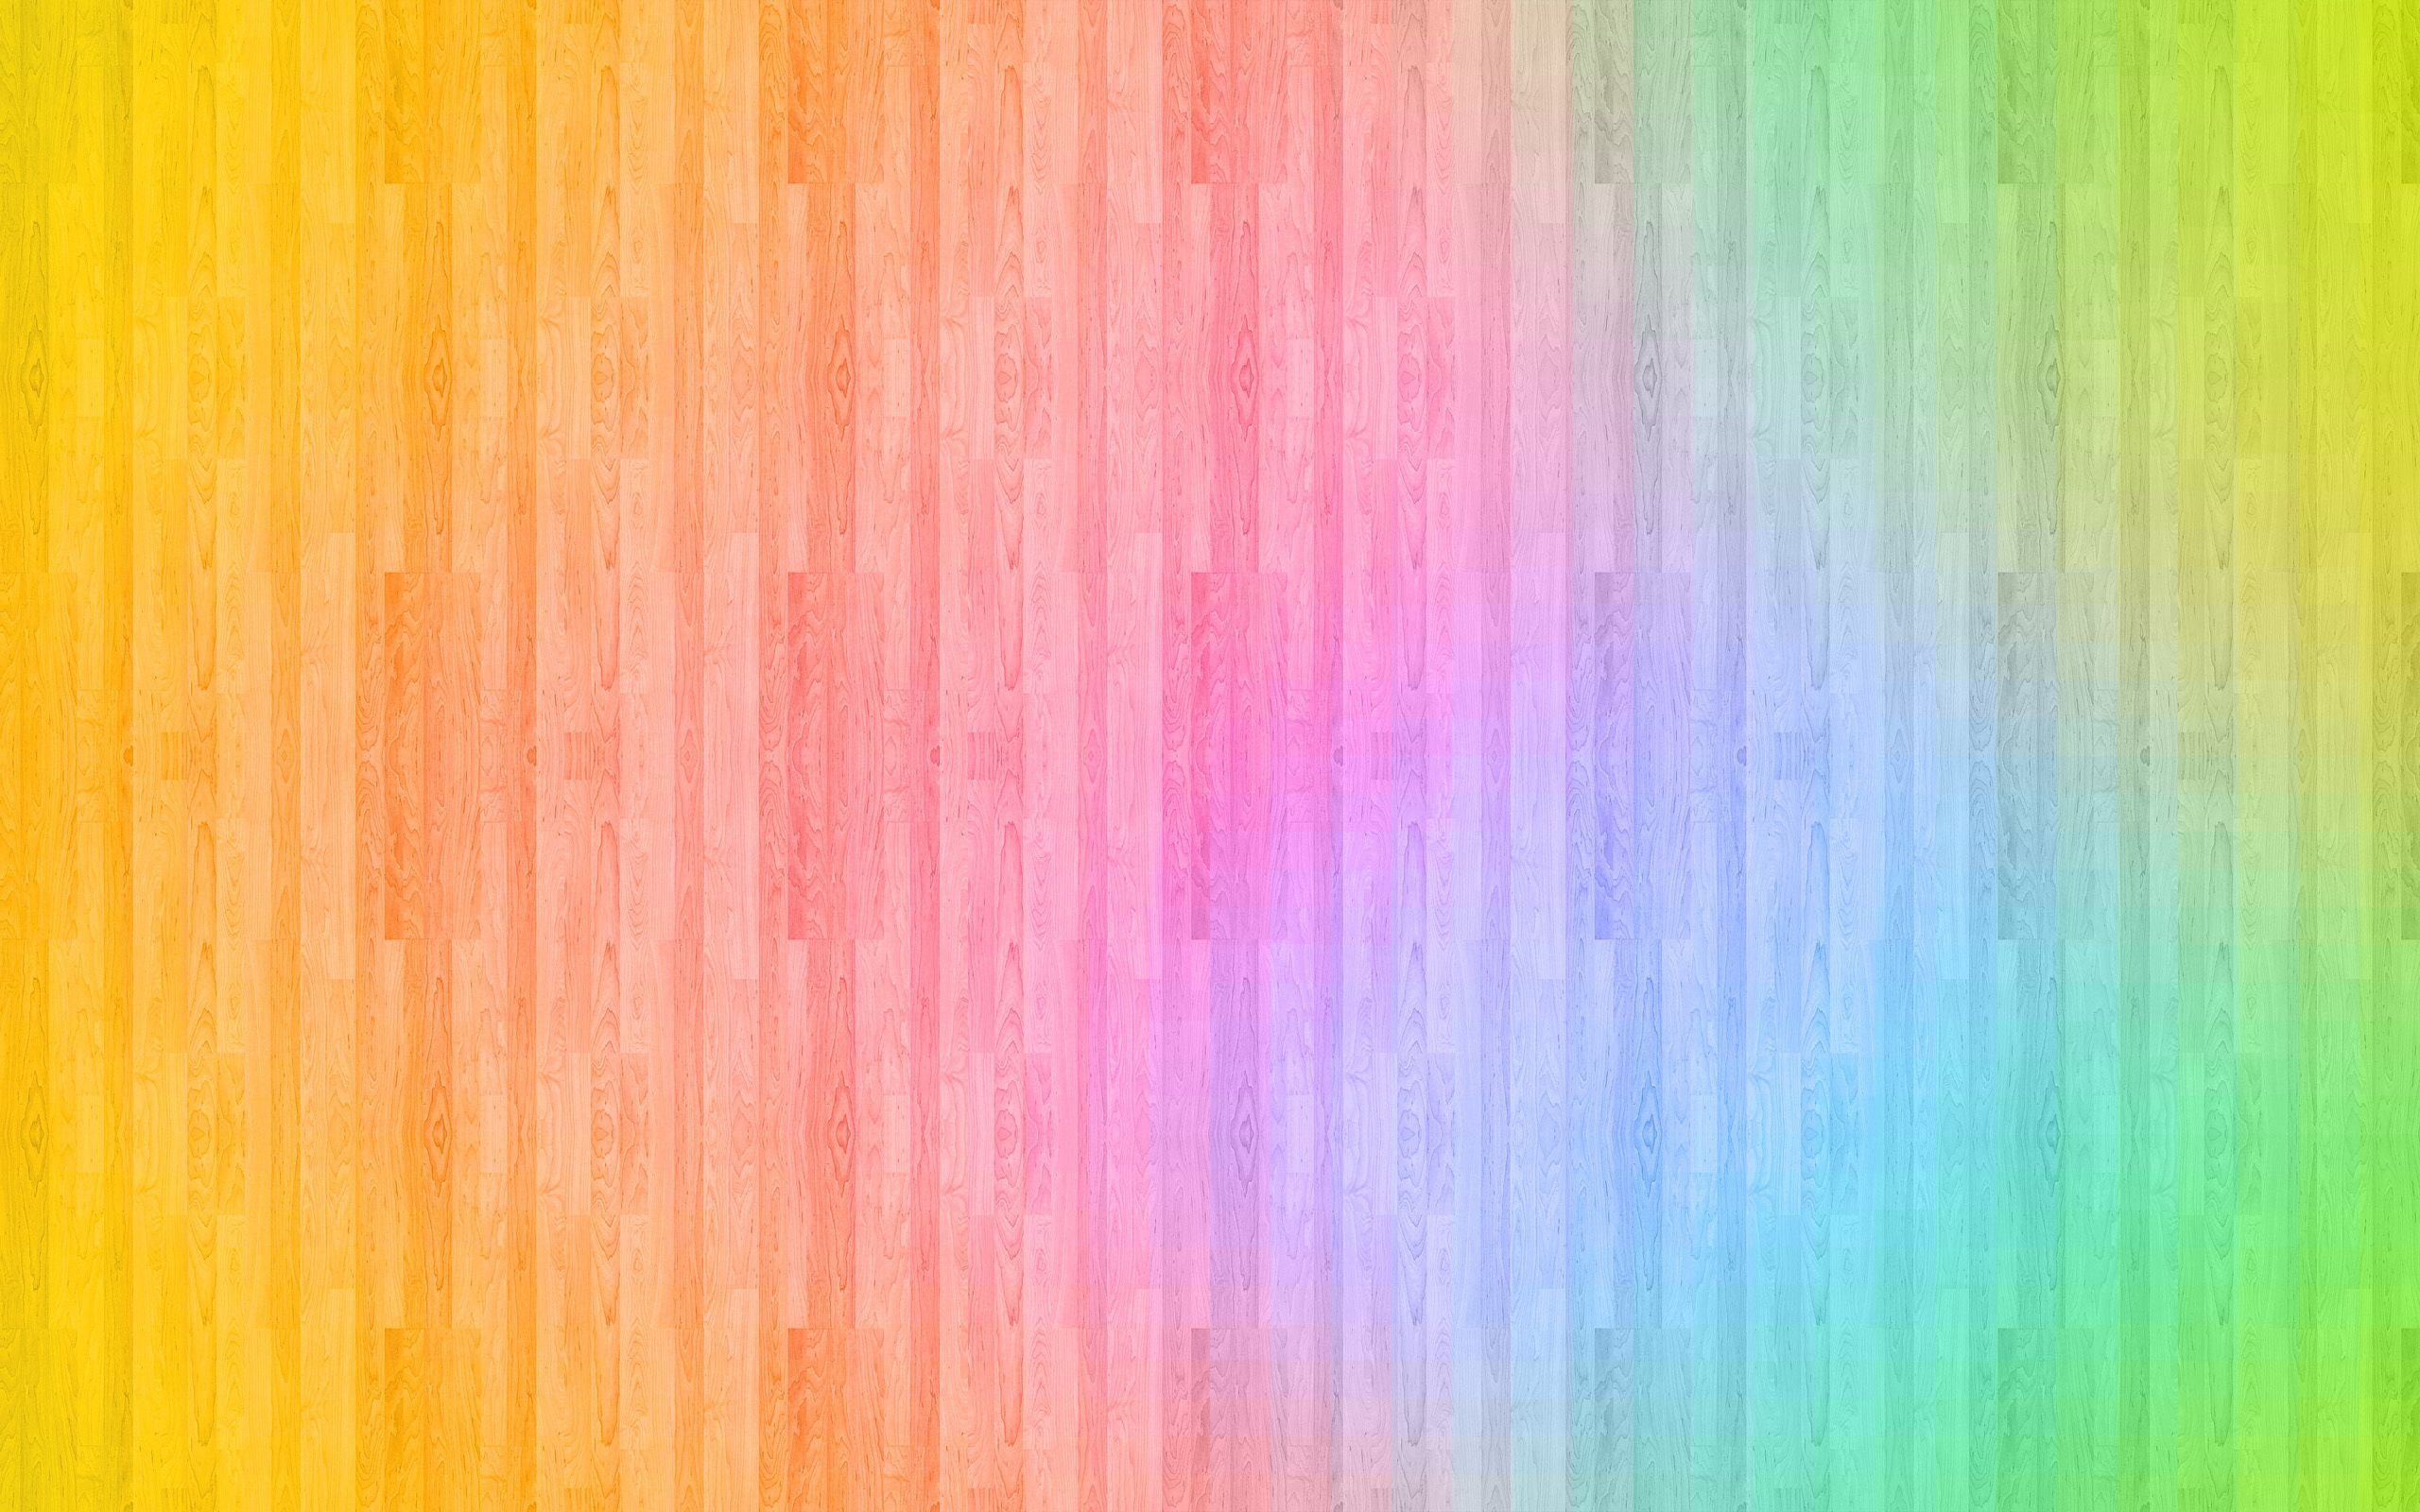 116522 download wallpaper Textures, Texture, Lines, Vertical, Rainbow, Iridescent, Background screensavers and pictures for free